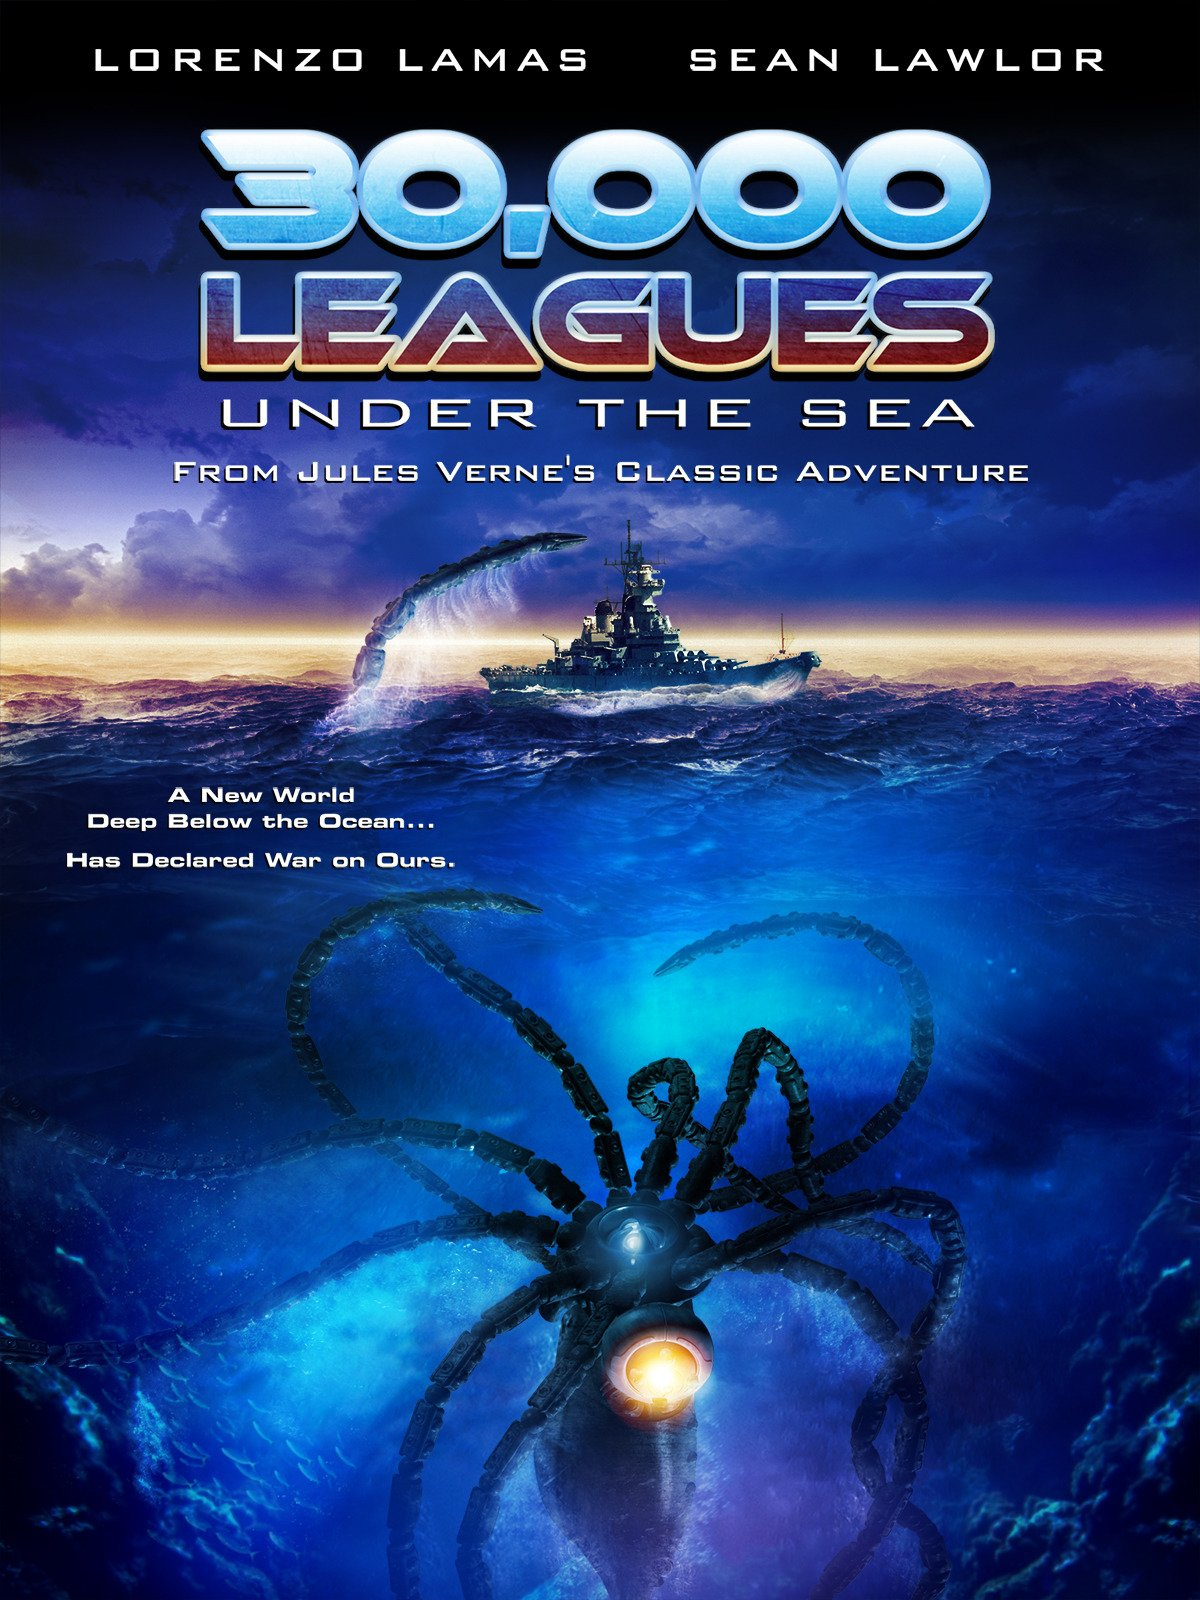 30, 000 Leagues Under the Sea